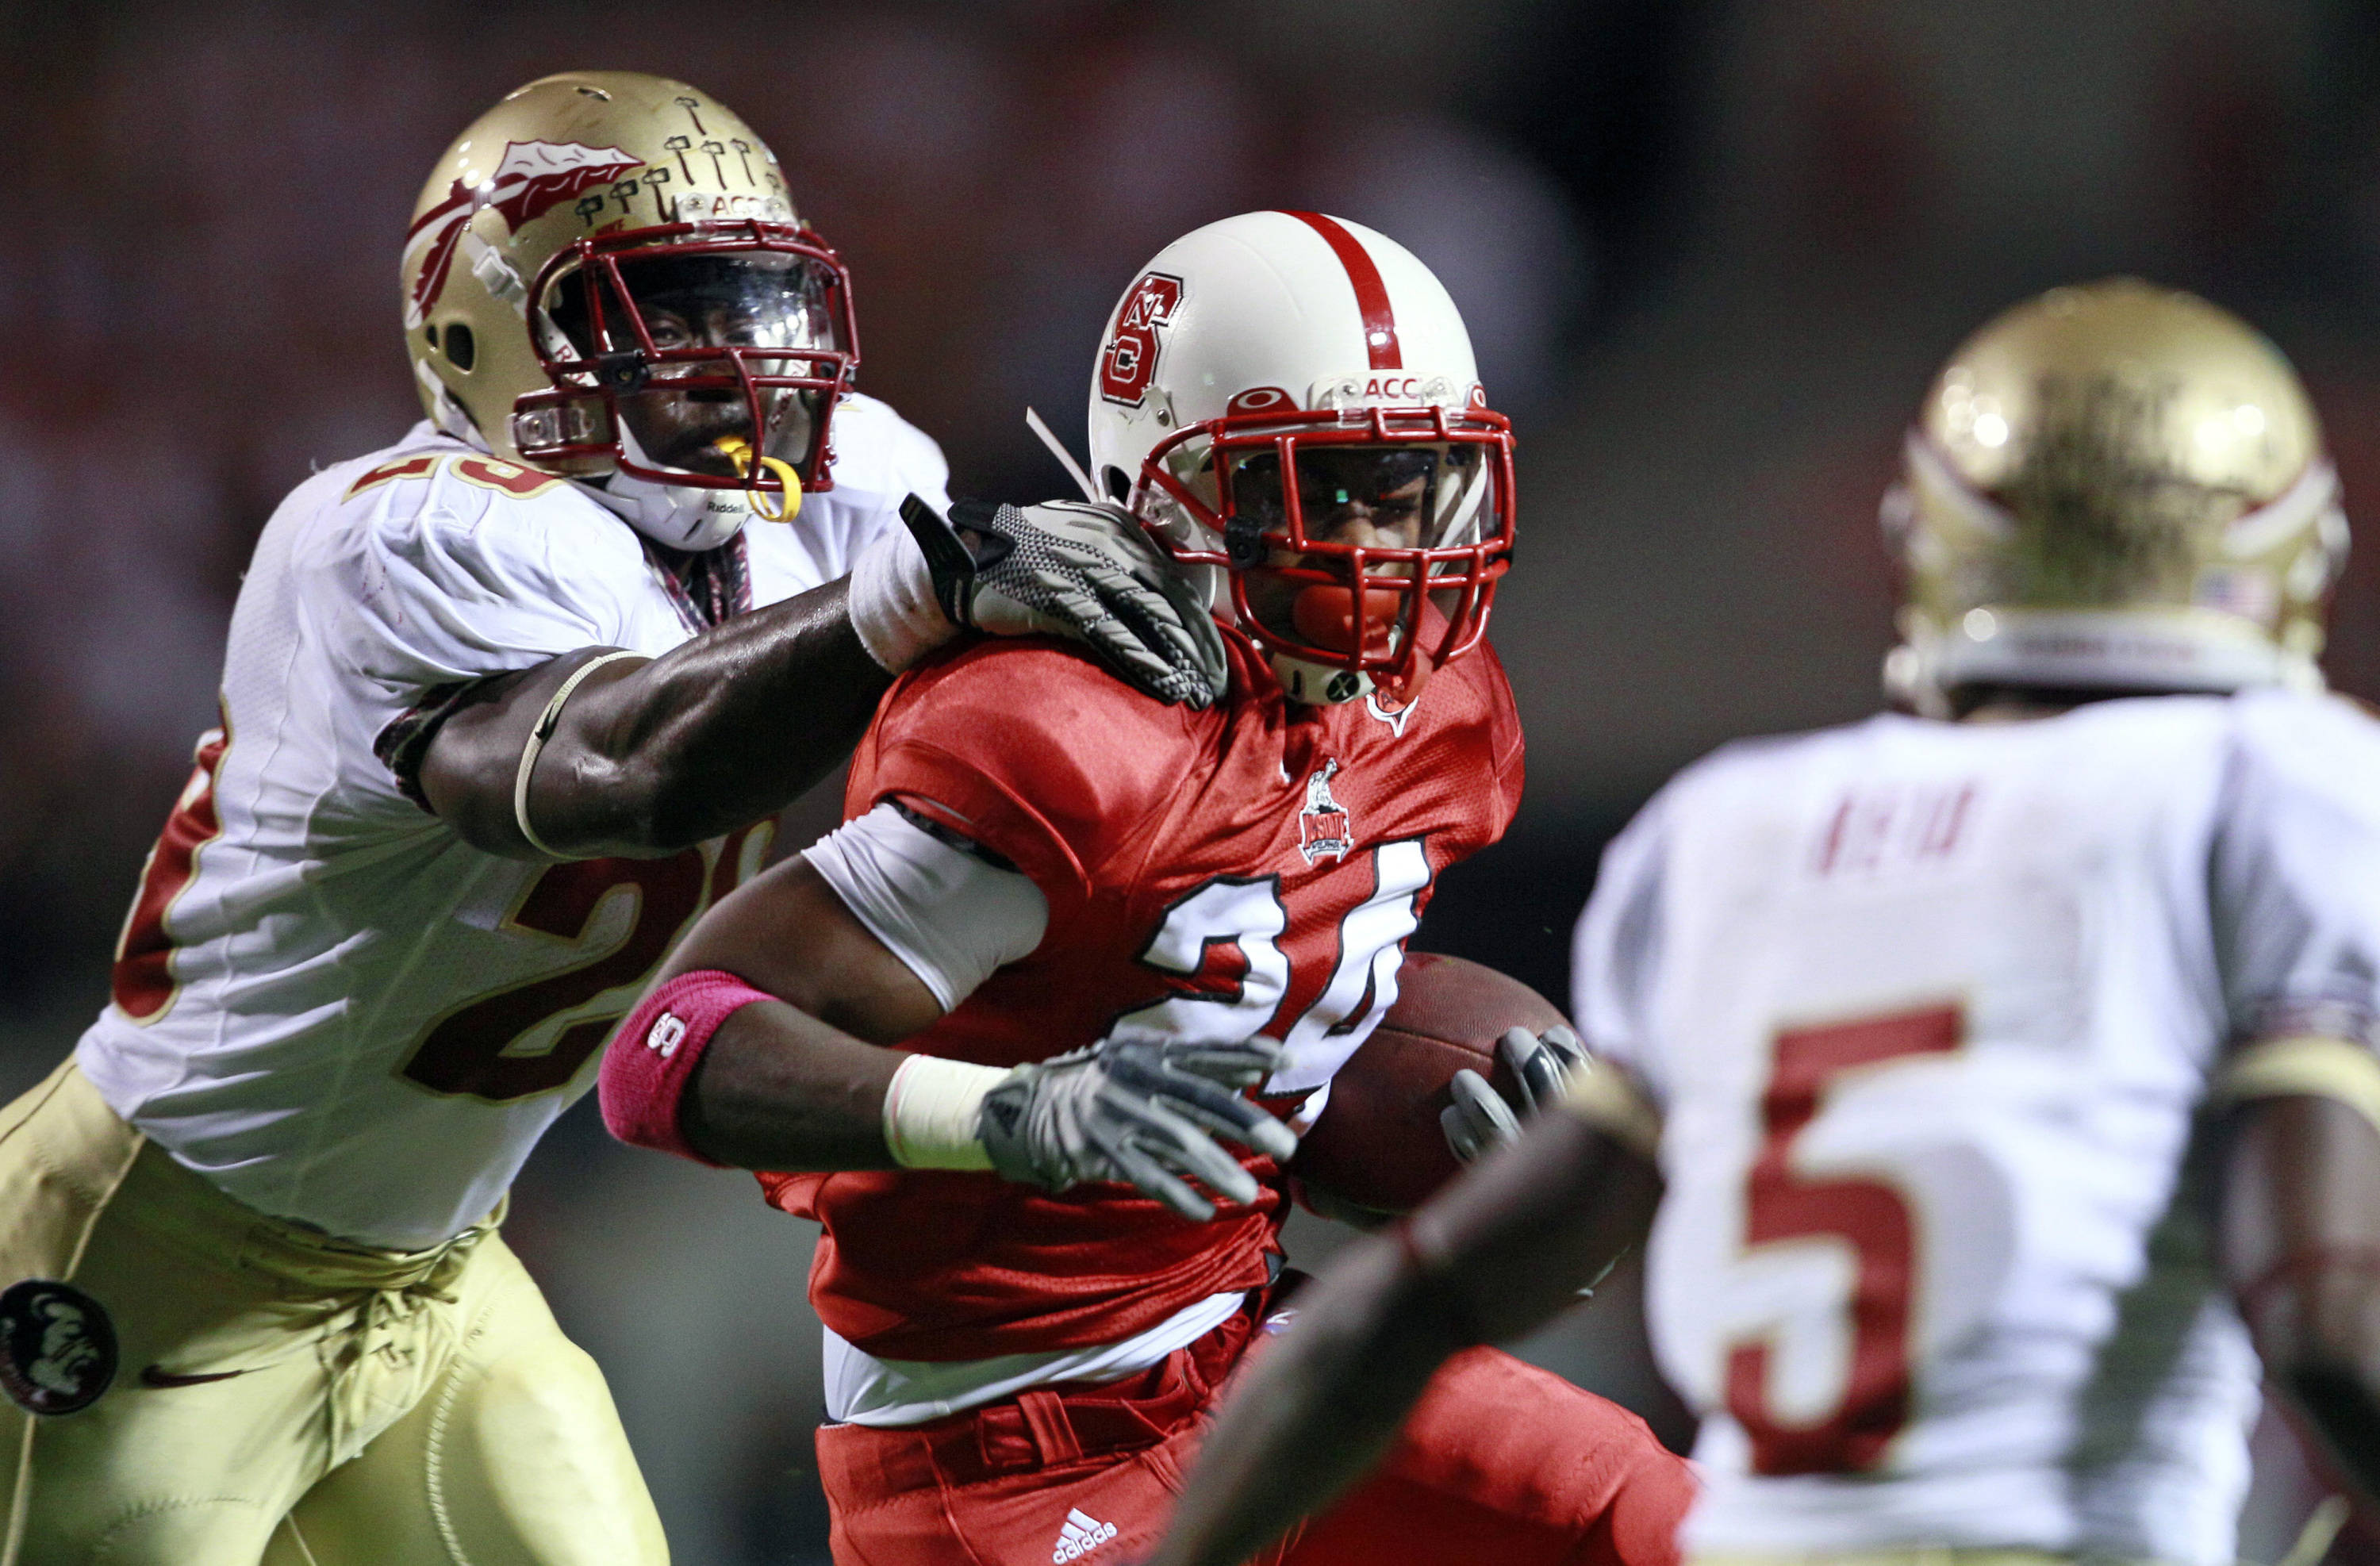 Florida State's Kendall Smith and Greg Reid (5) move in to tackle North Carolina State's James Washington (24) during the first half of an NCAA college football game in Raleigh, N.C., Thursday, Oct. 28, 2010. (AP Photo/Gerry Broome)